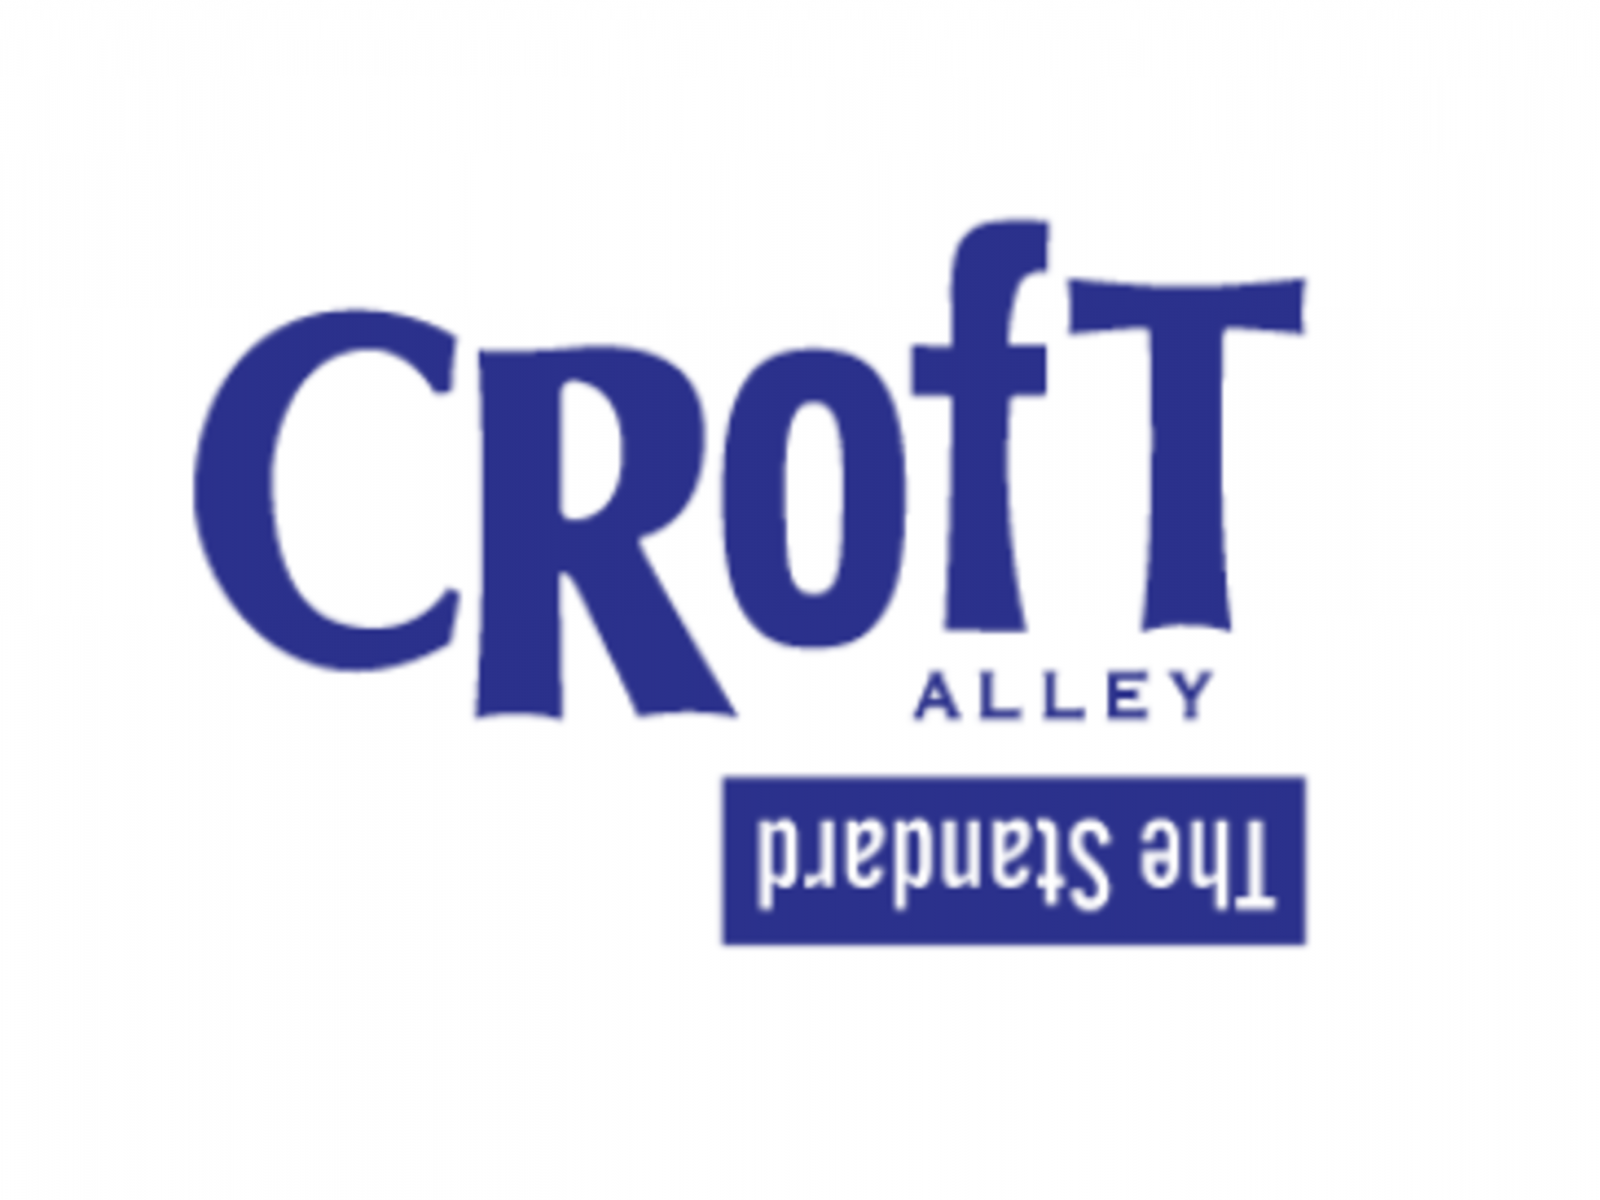 Croft Alley at The Standard